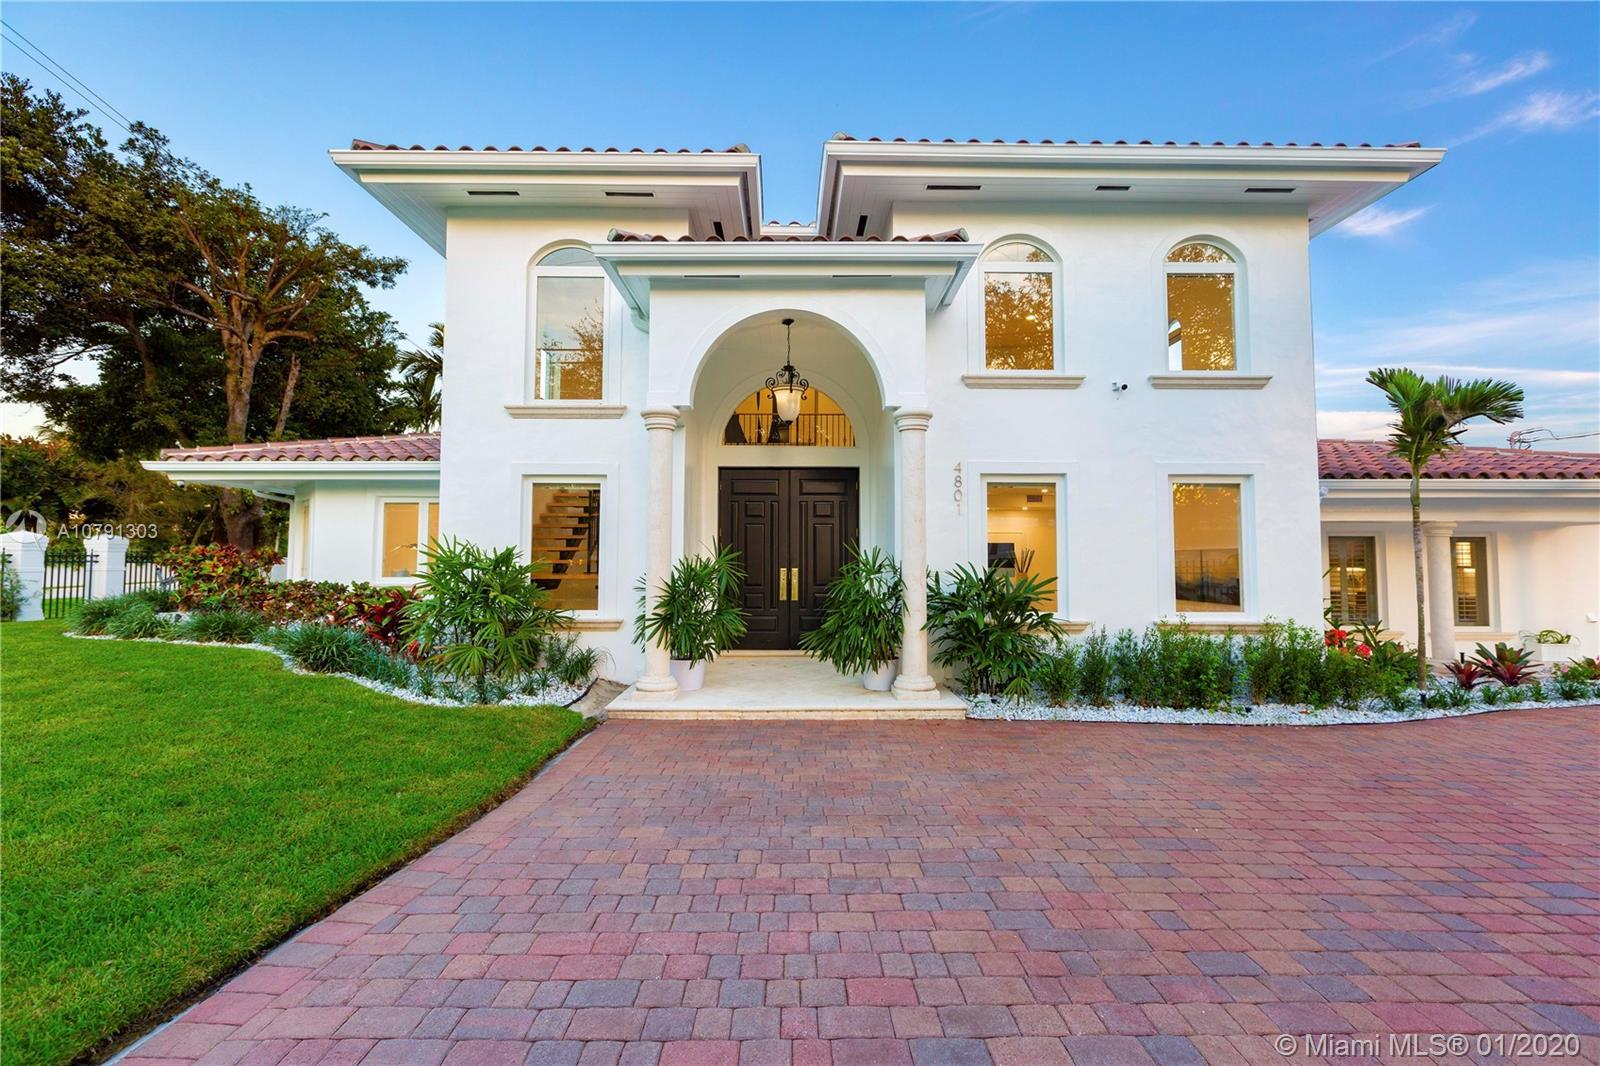 Stately Waterfront Villa on the desirable Coral Gables Waterway only blocks from the Riviera Golf Cl